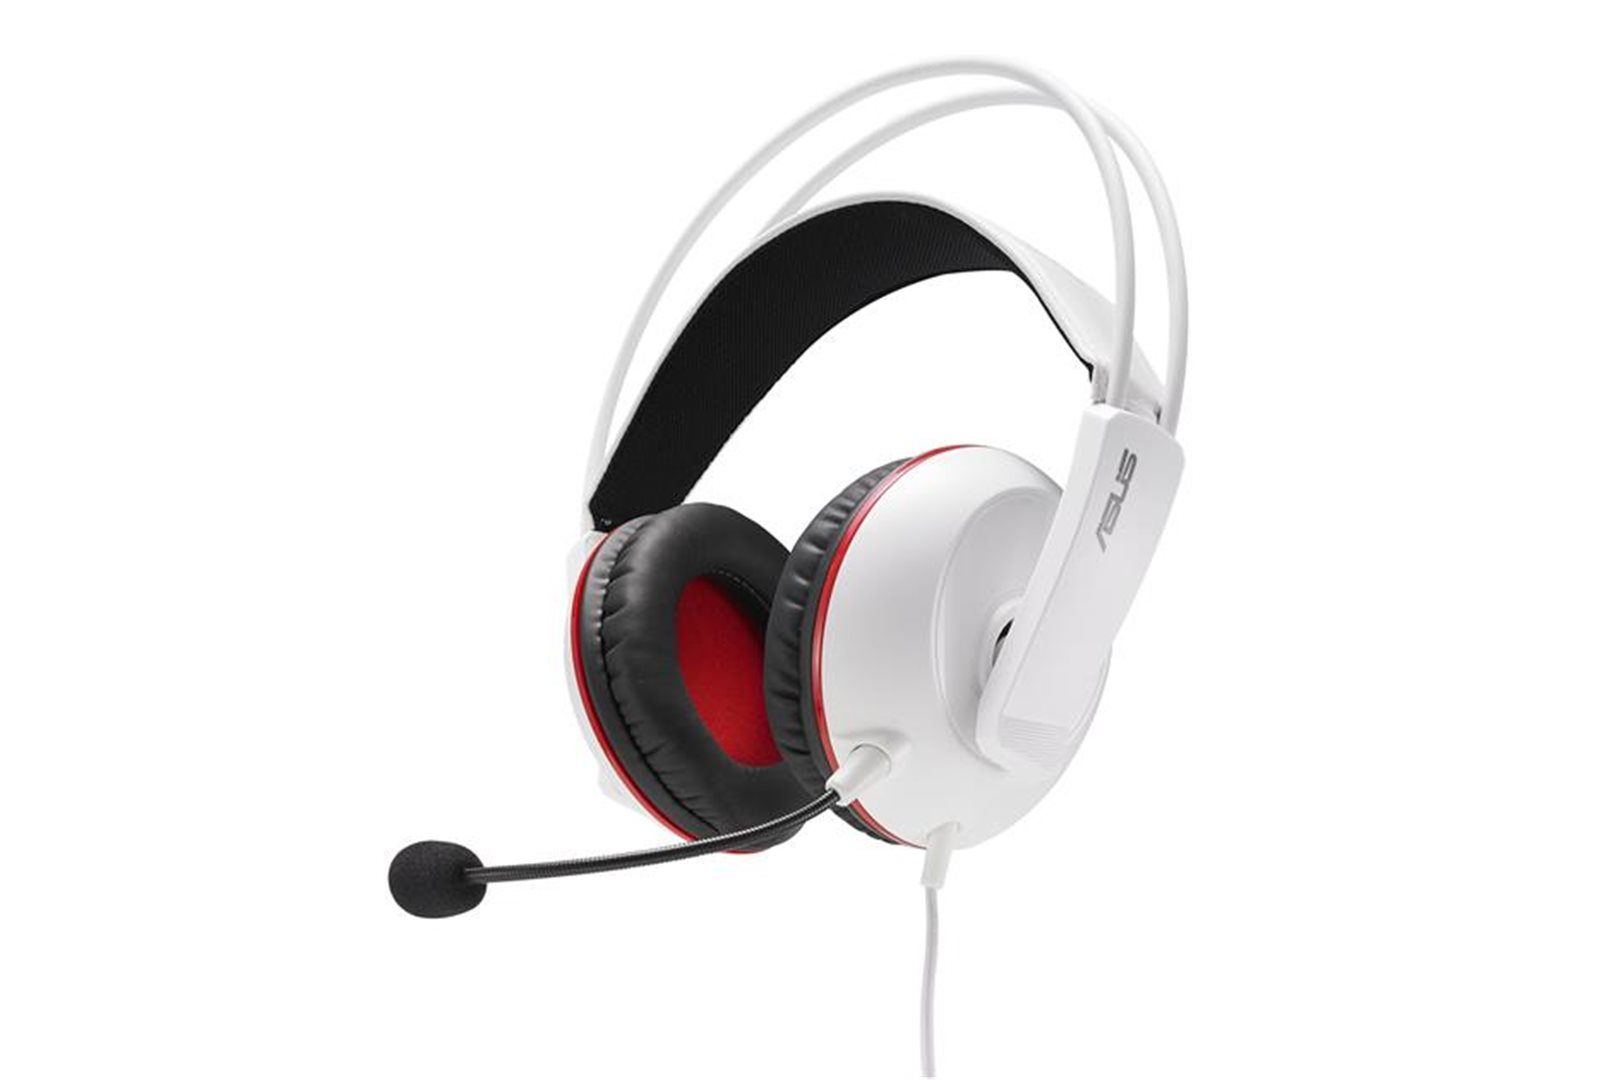 ASUS Cerberus arctic gaming headset